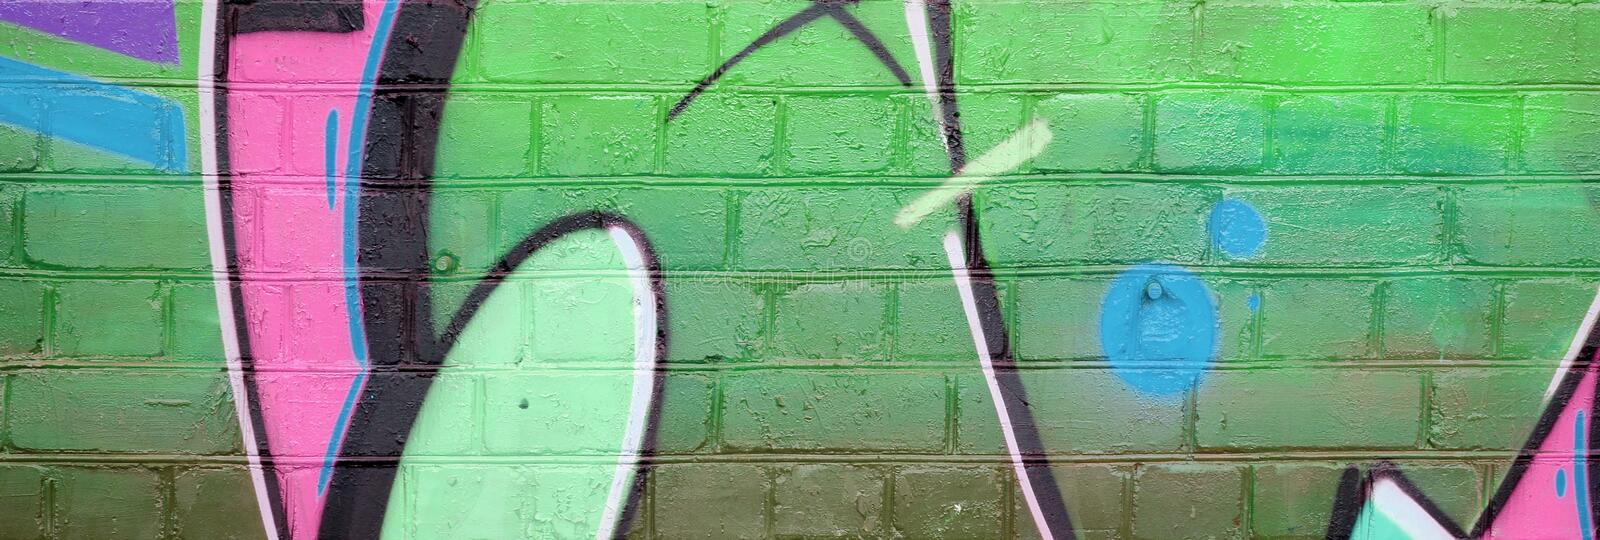 Abstract colorful fragment of graffiti paintings on old brick wall in pink and green colors. Street art composition with parts of stock photography